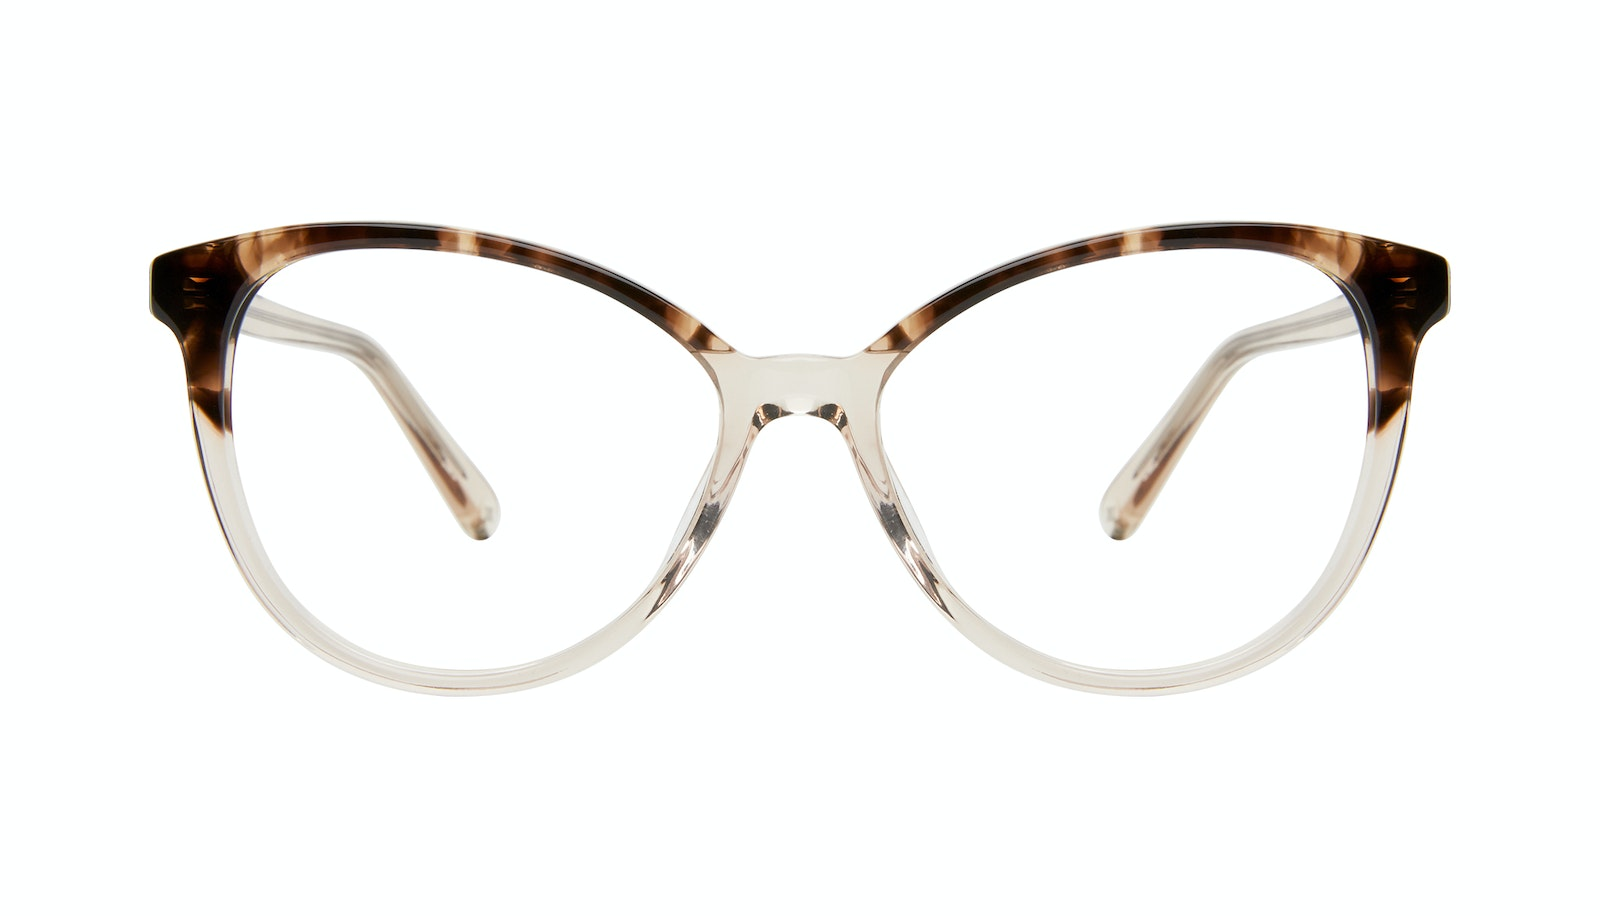 Affordable Fashion Glasses Cat Eye Eyeglasses Women Esprit Golden Tortoise